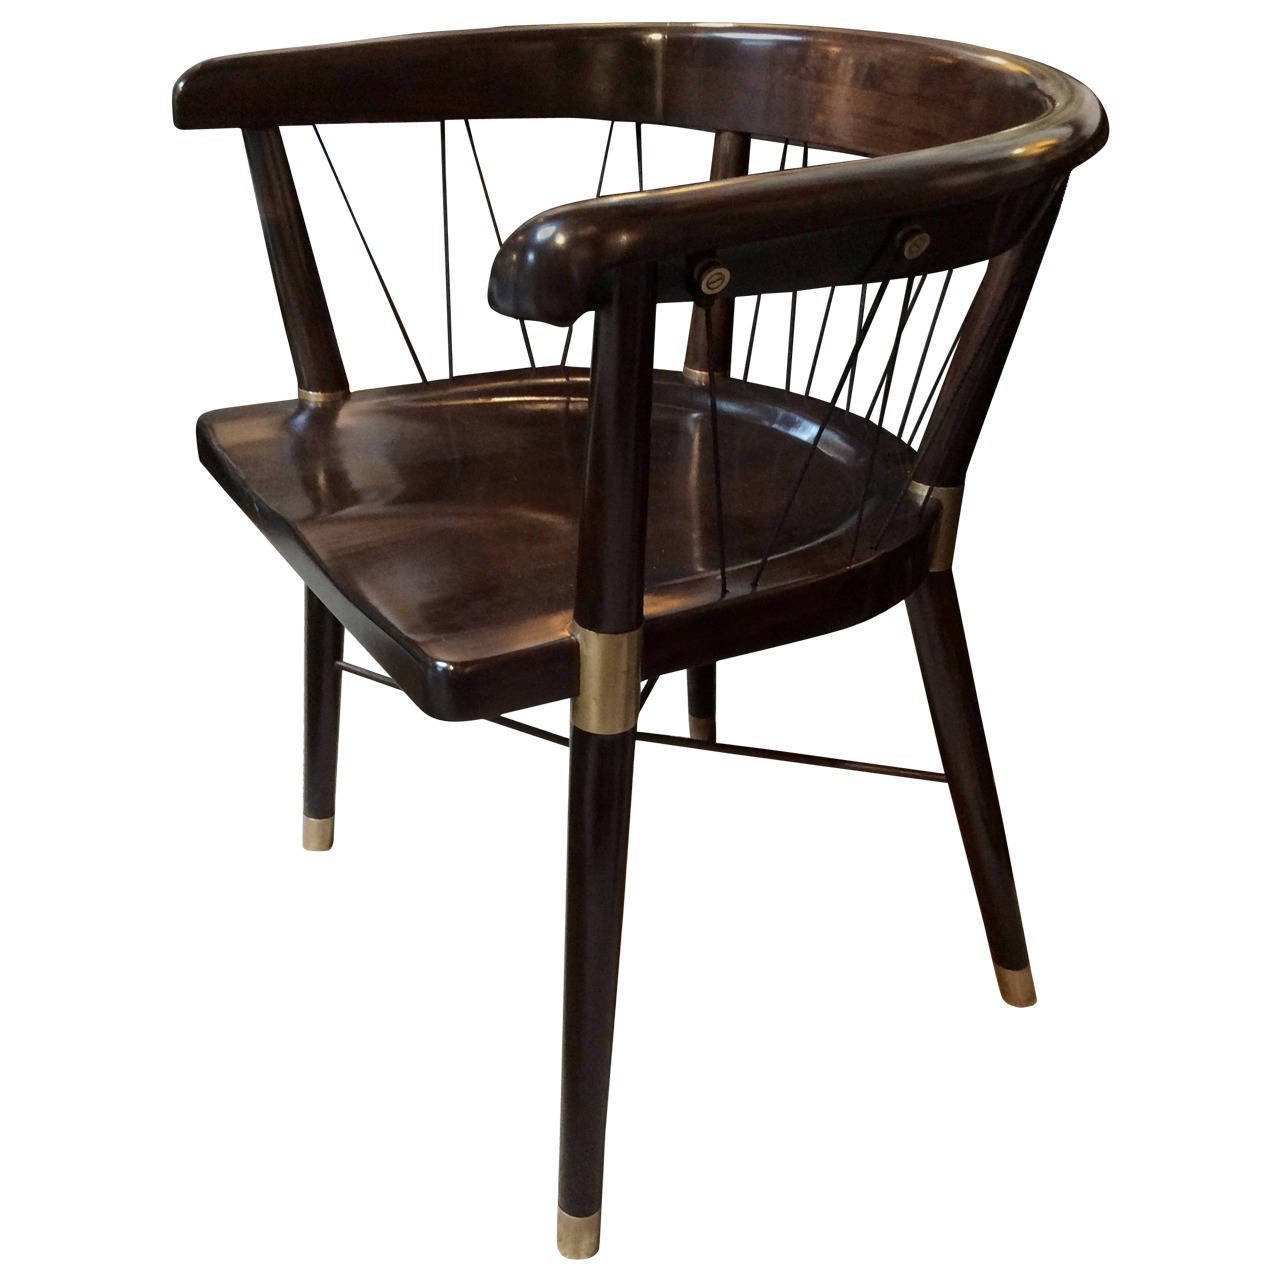 Edward wormley chair with brass fittings and cord back at 1stdibs - Edward wormley chairs ...